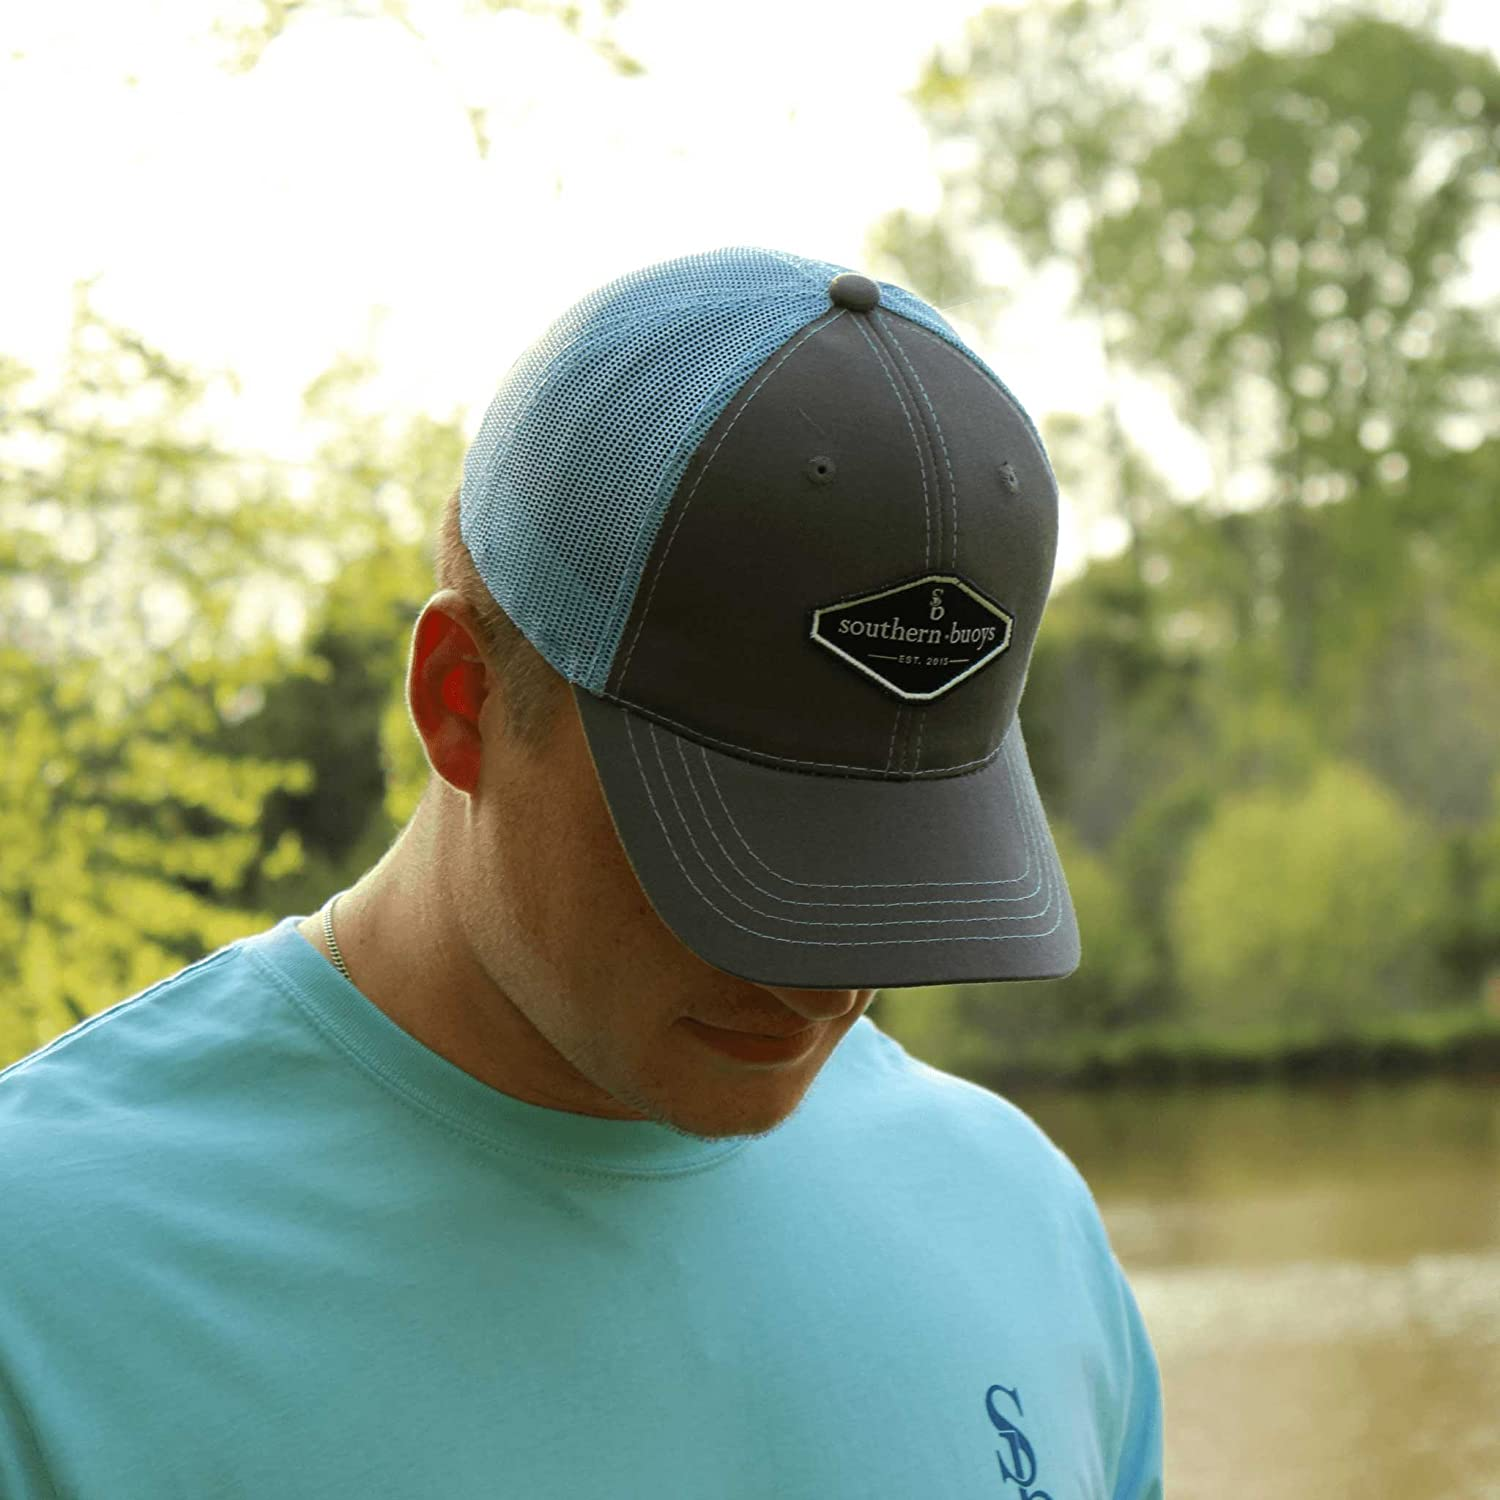 Southern Buoys SB Badge Trucker Hat